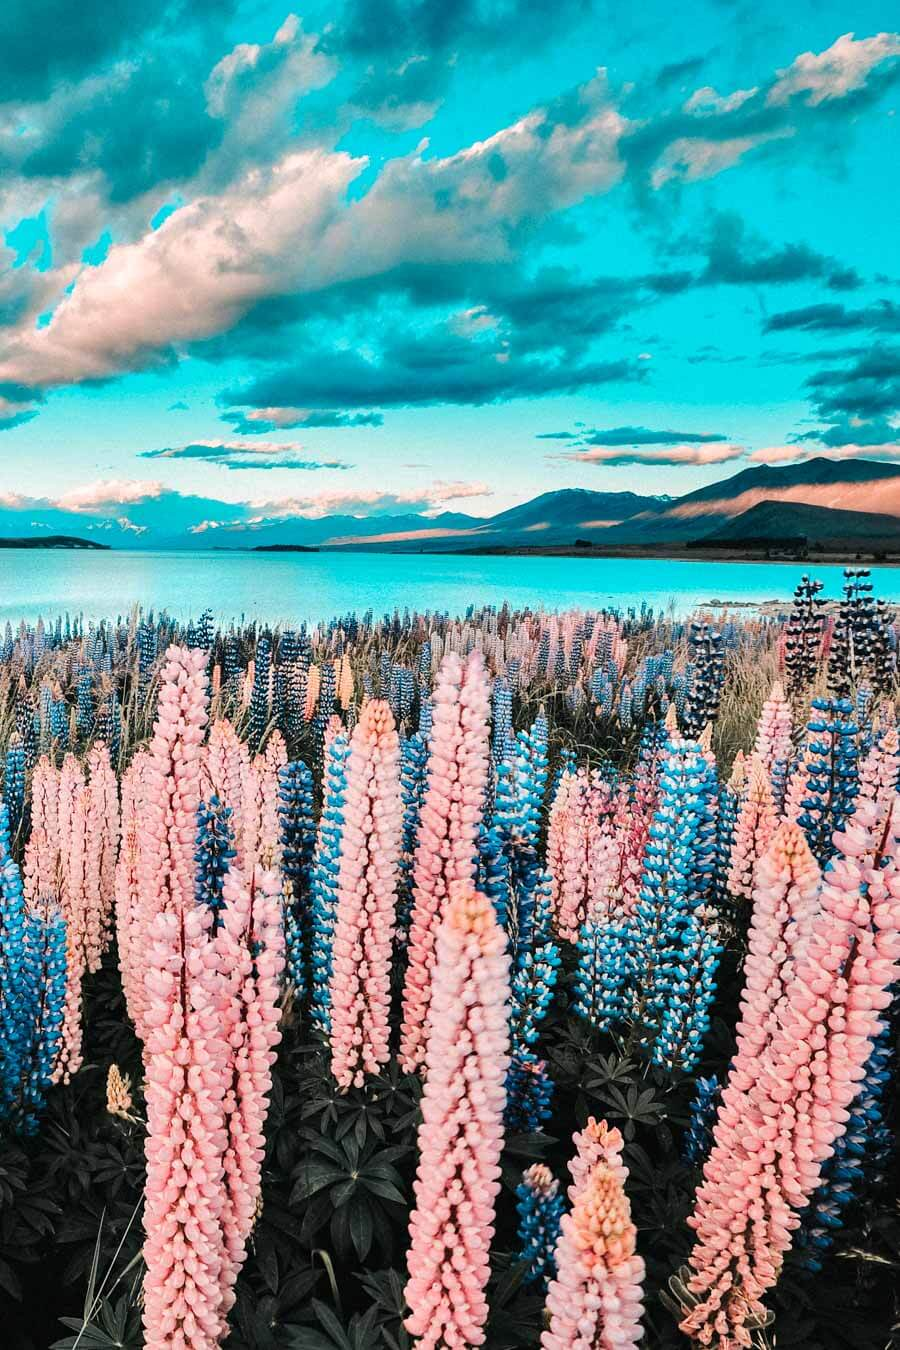 20 Most Beautiful Places in New Zealand! Lake Tekapo is one of the top beauties of New Zealand and definitely one of the top places to see in New Zealand before you die.